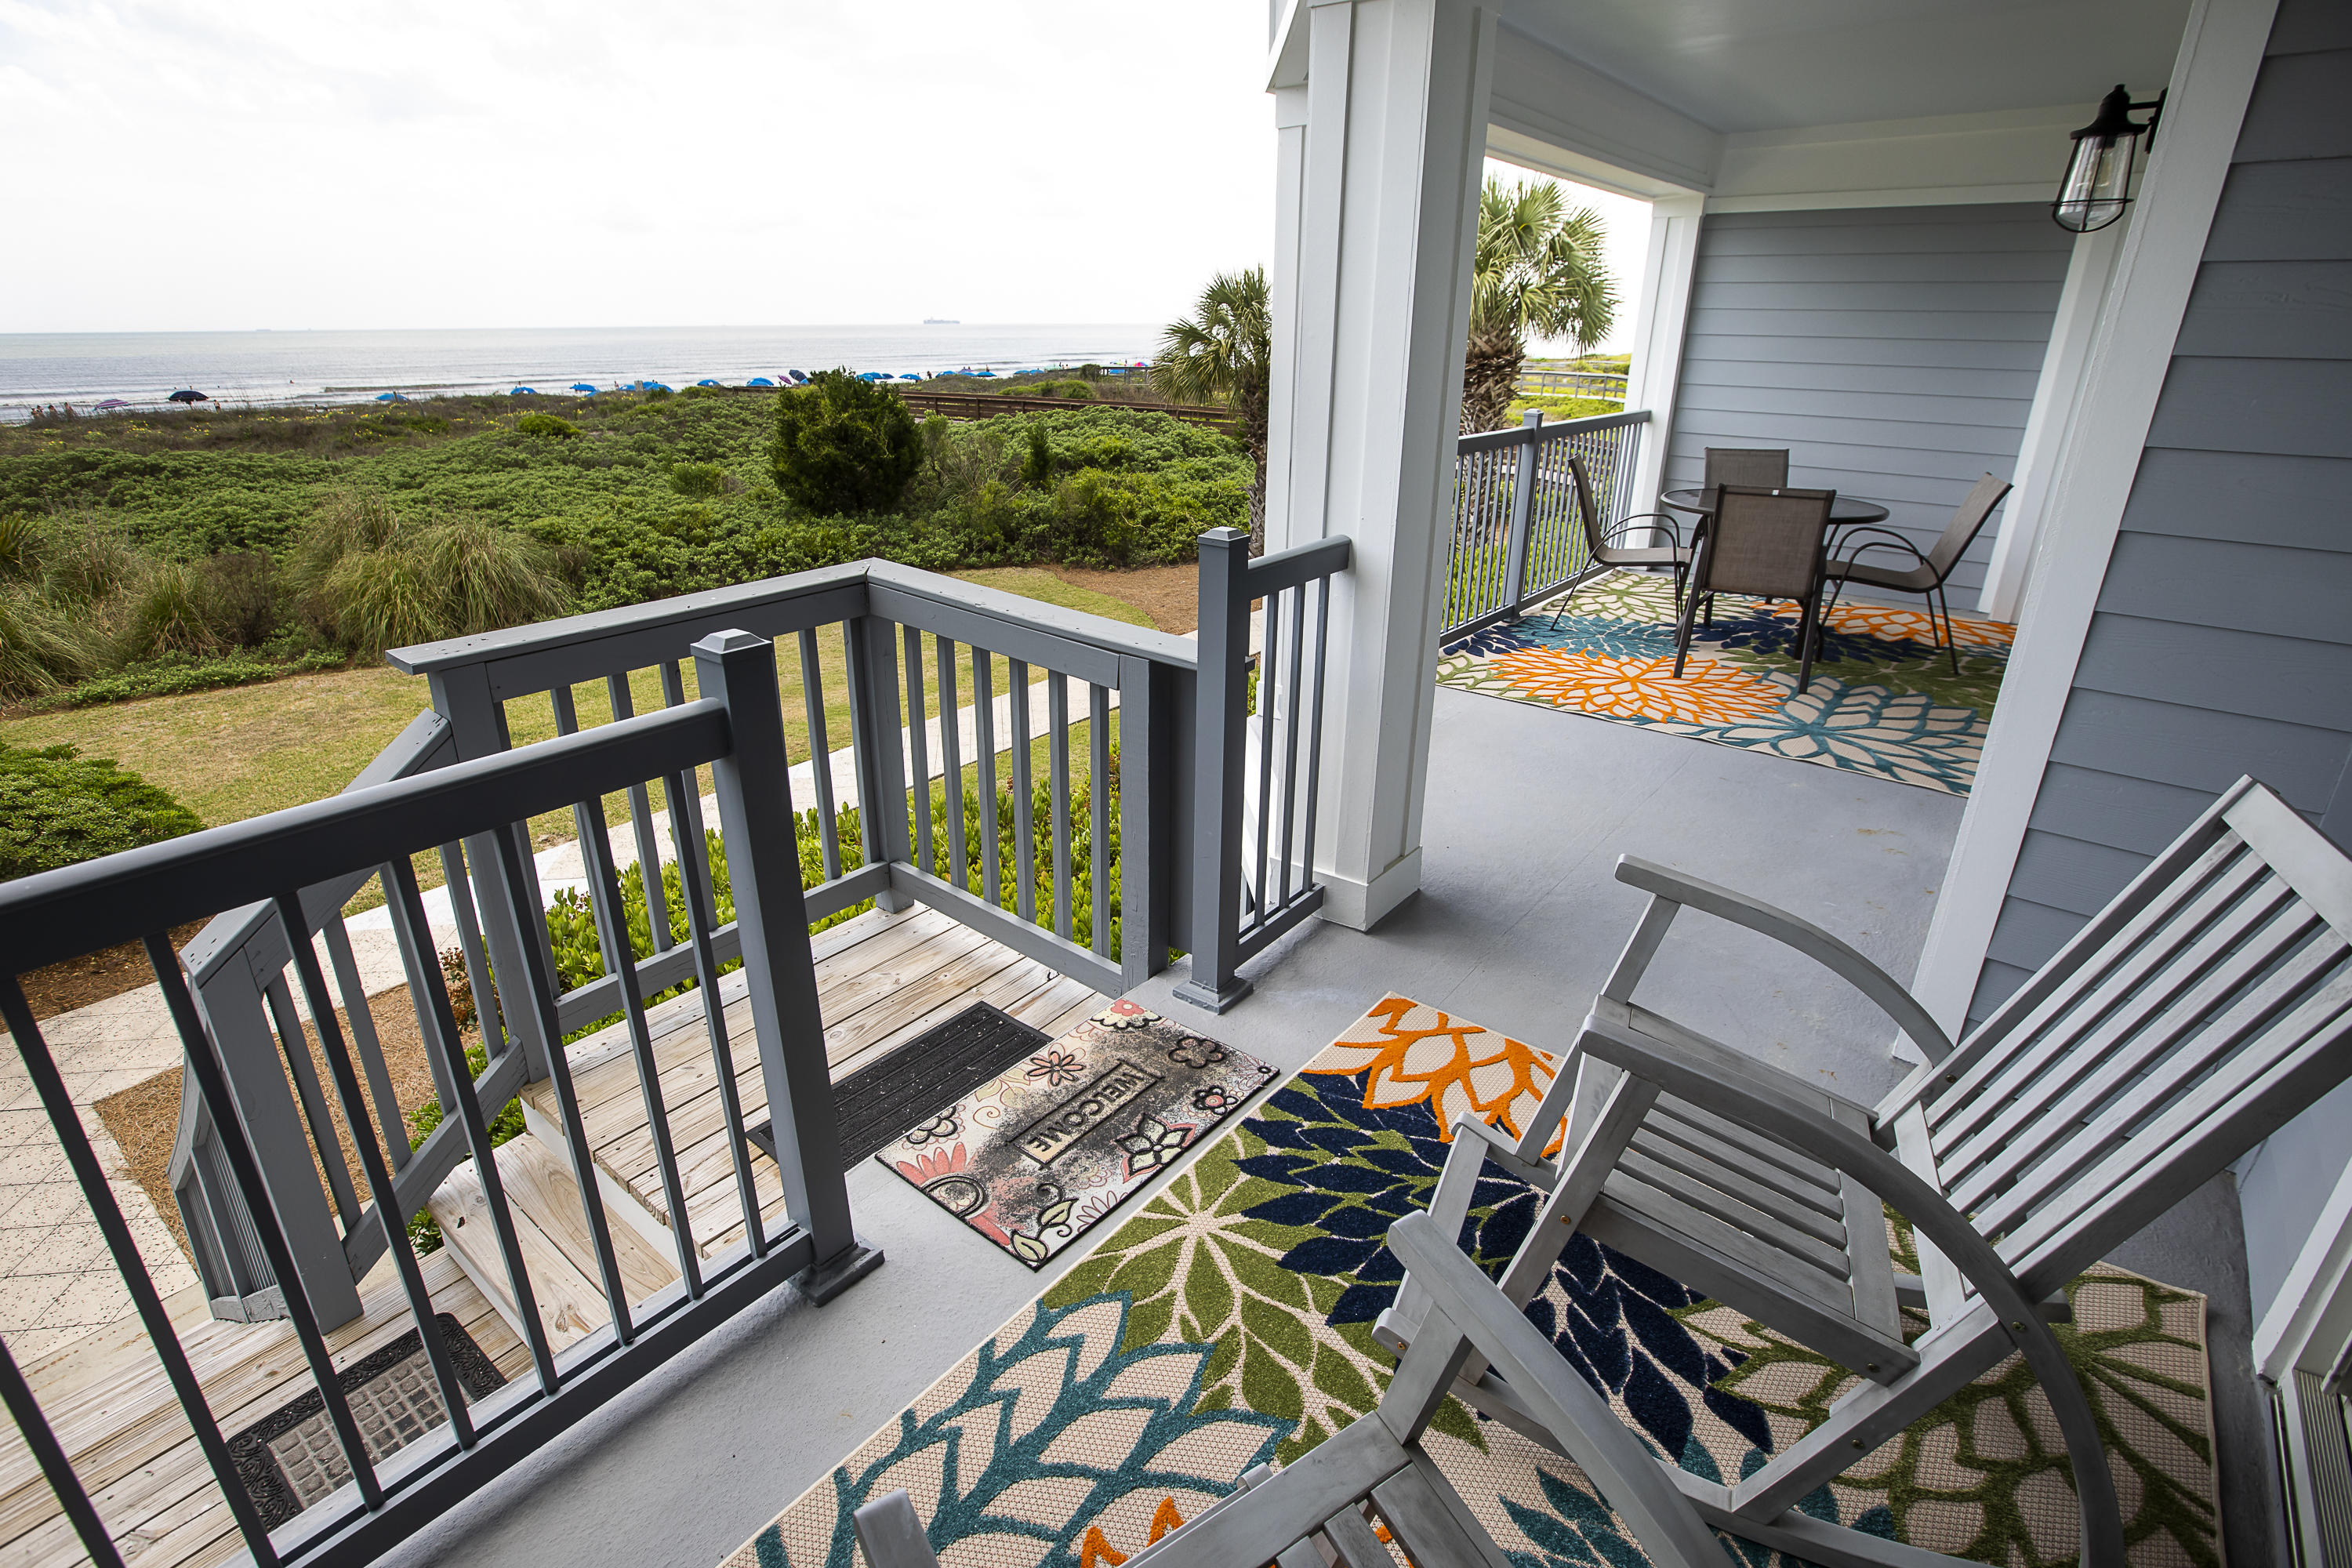 Isle of Palms Homes For Sale - 1140 Ocean, Isle of Palms, SC - 10